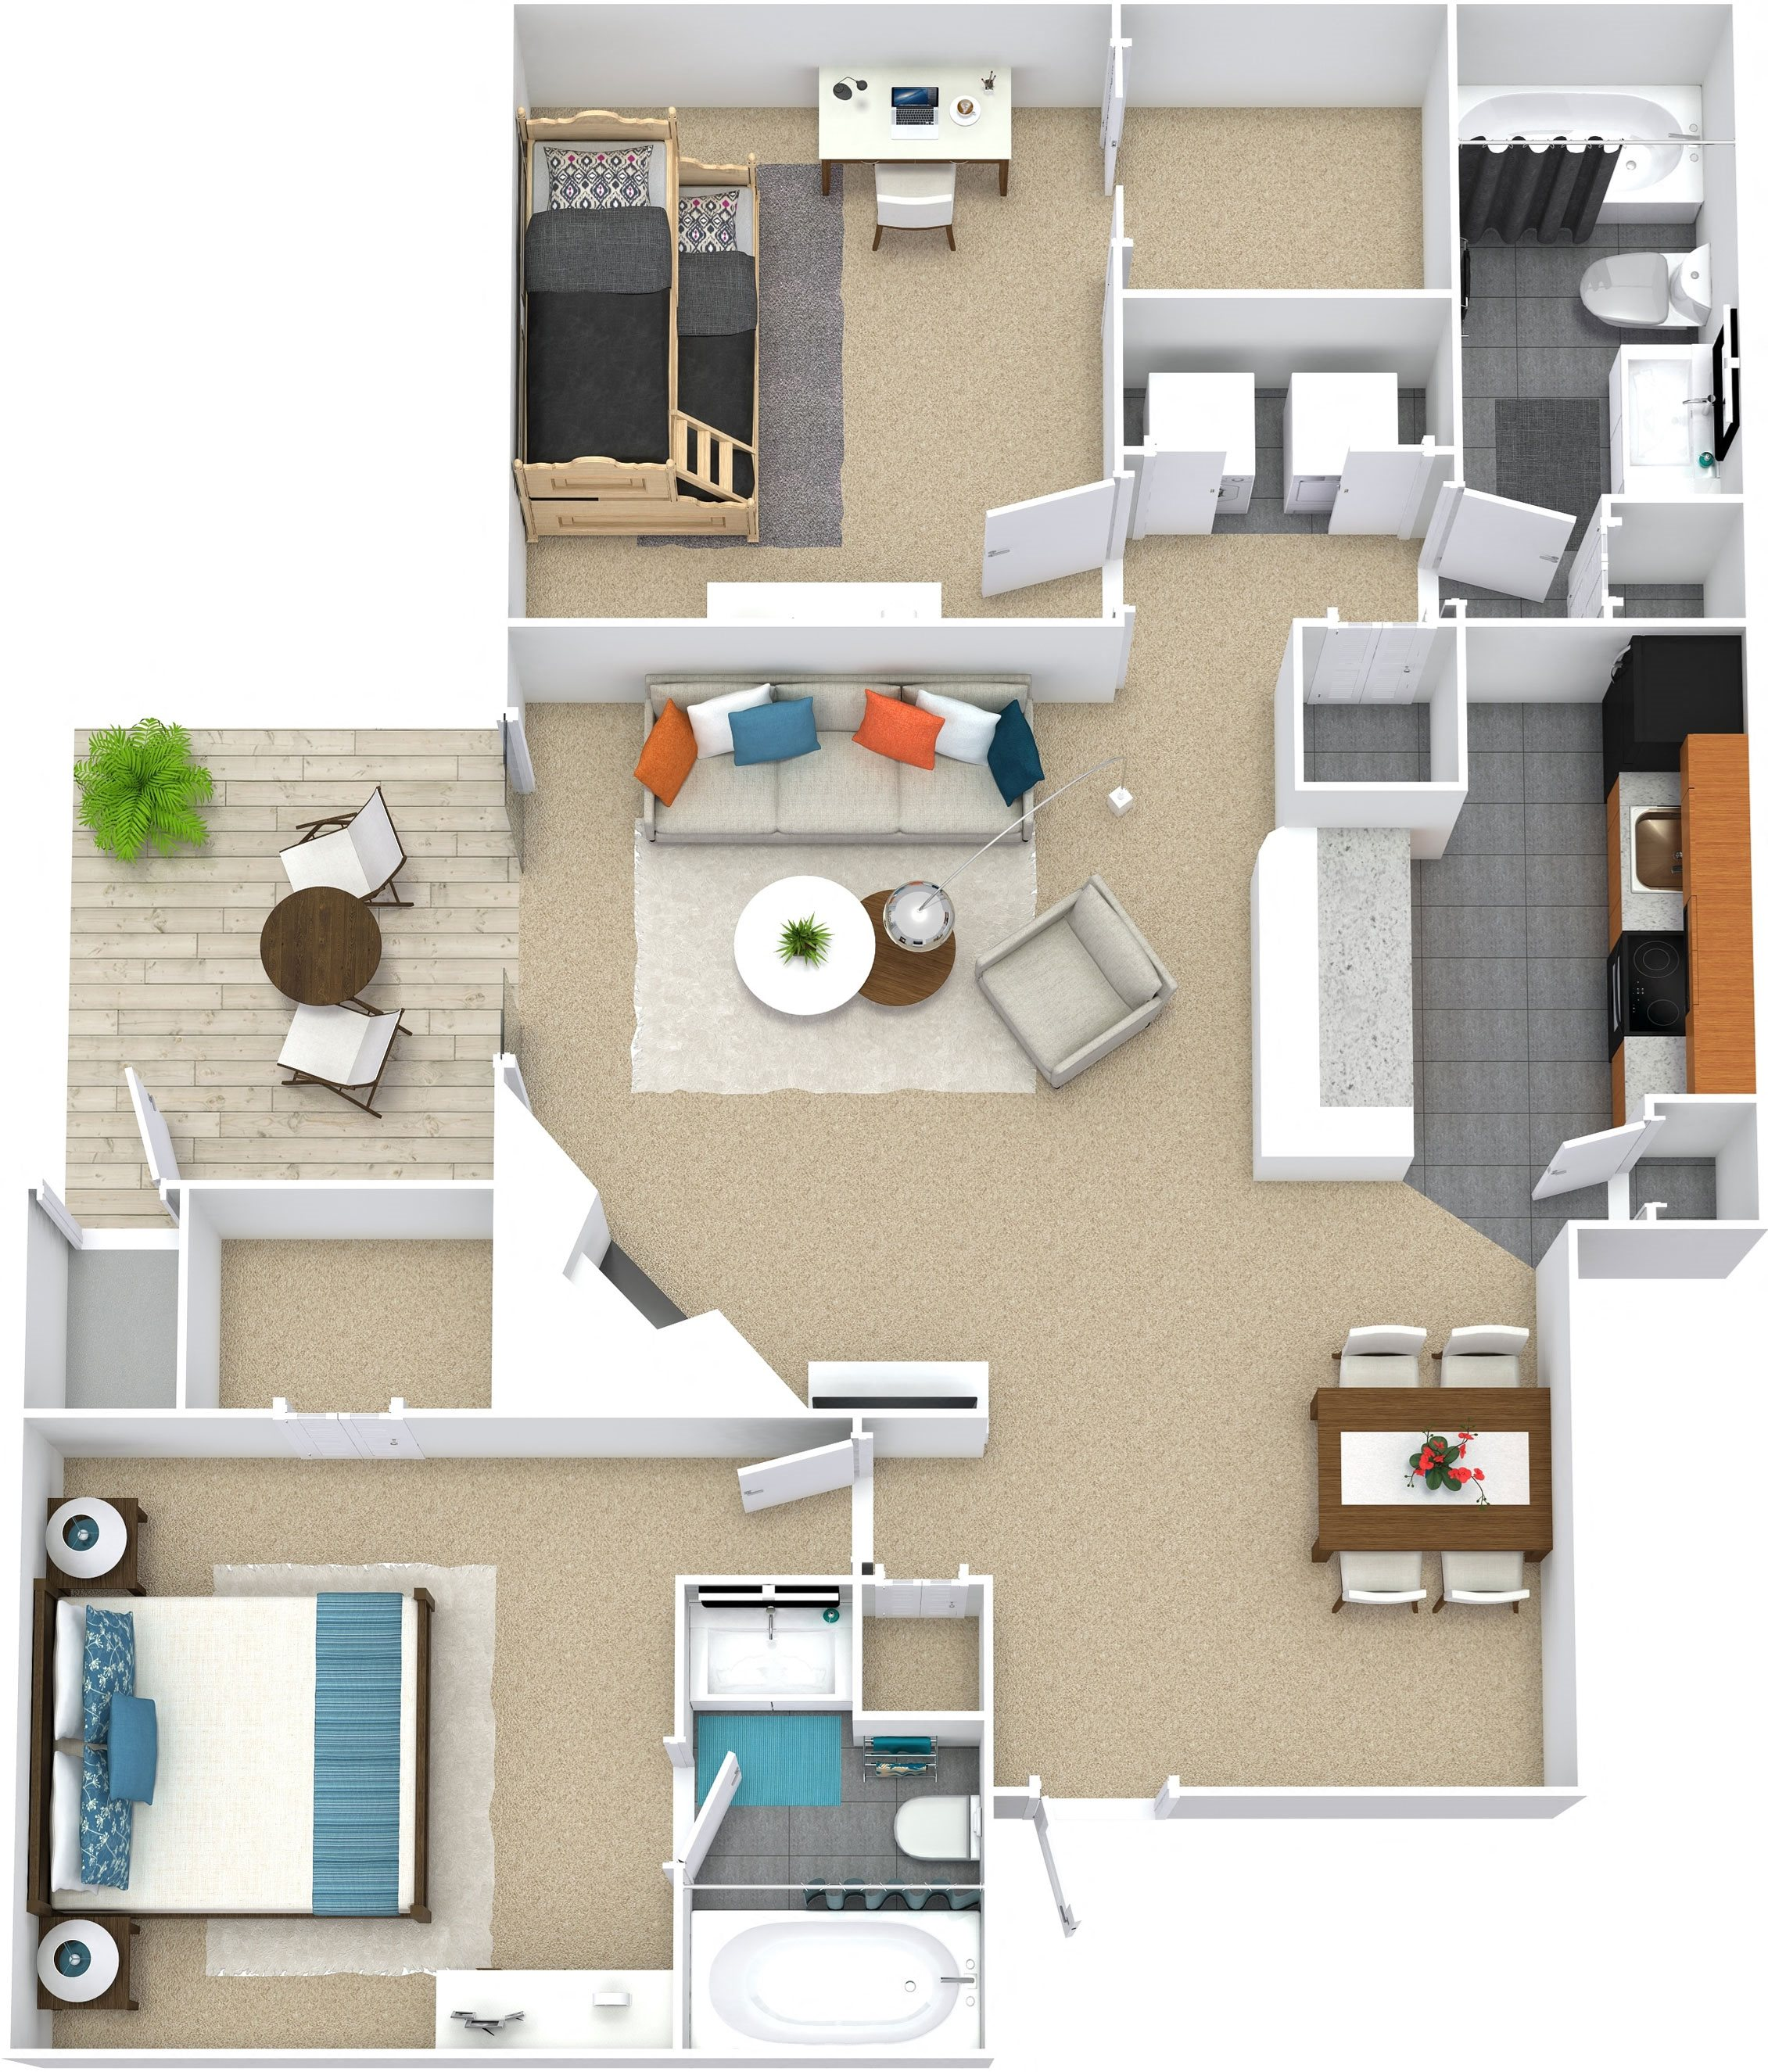 Floor Plans Of 1700 Place Apartments In Charlotte, NC